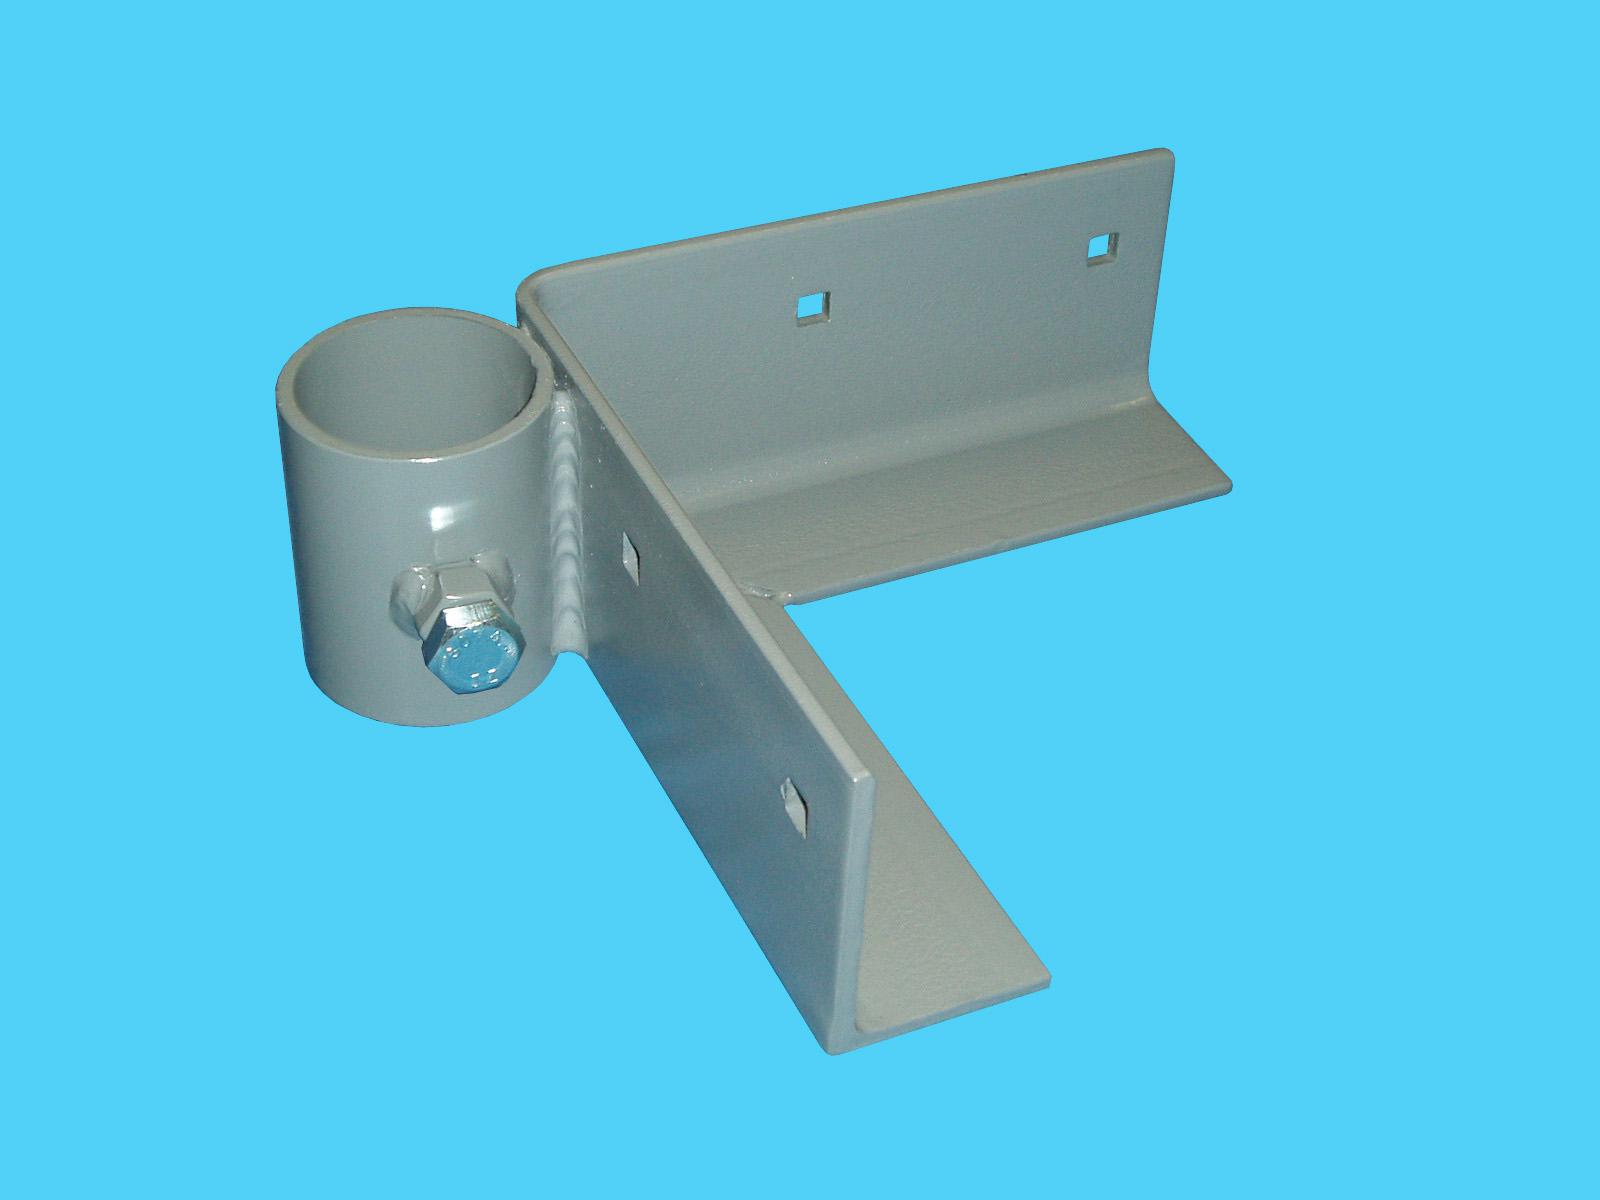 Stationary Dock Hardware for Building or Refurbishing Projects - Ve